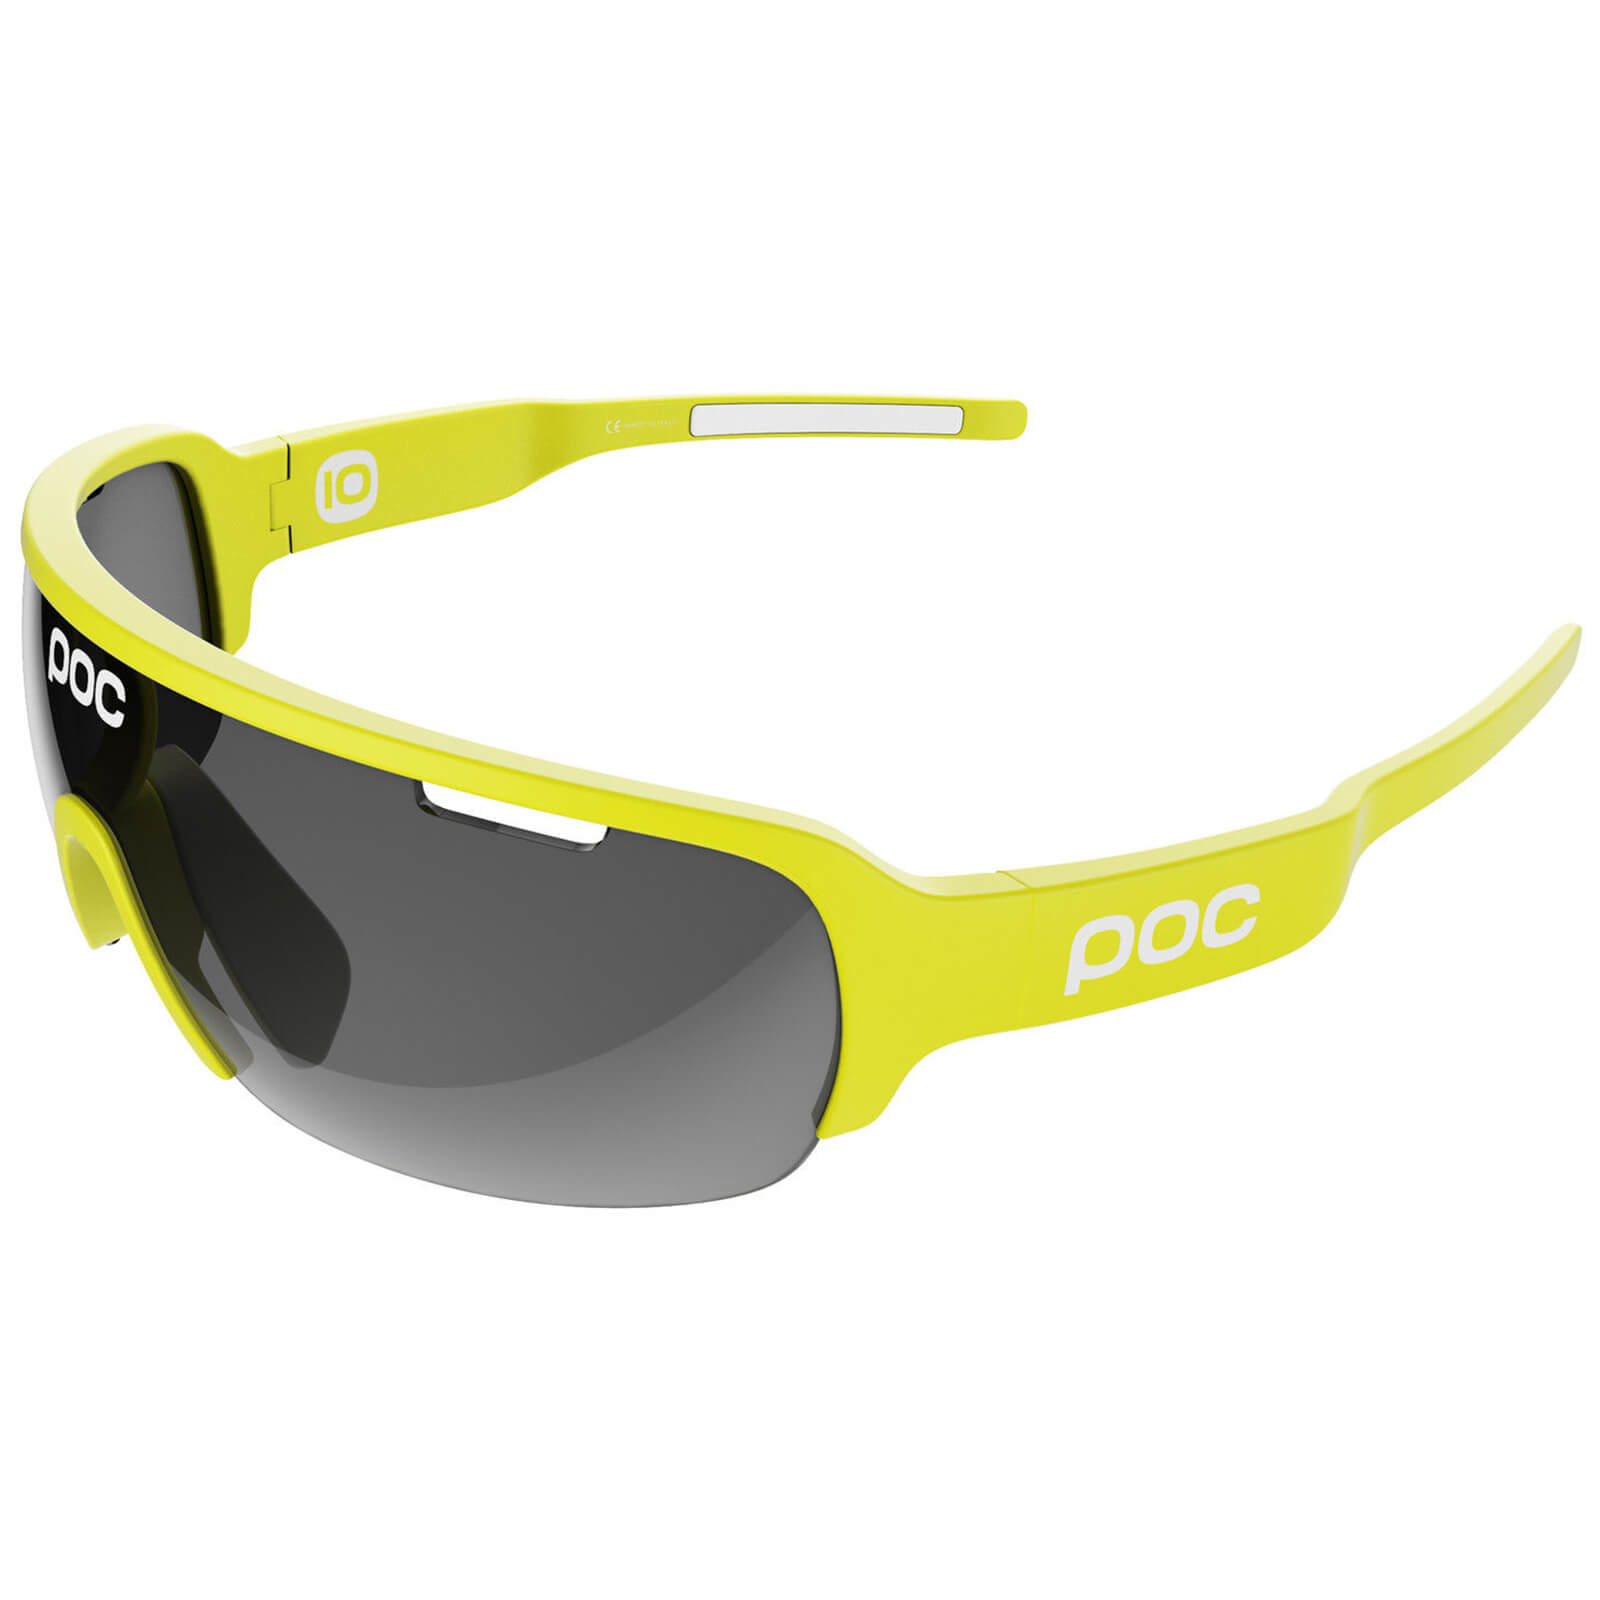 POC DO Half Blade Sunglasses - Unobtanium Yellow